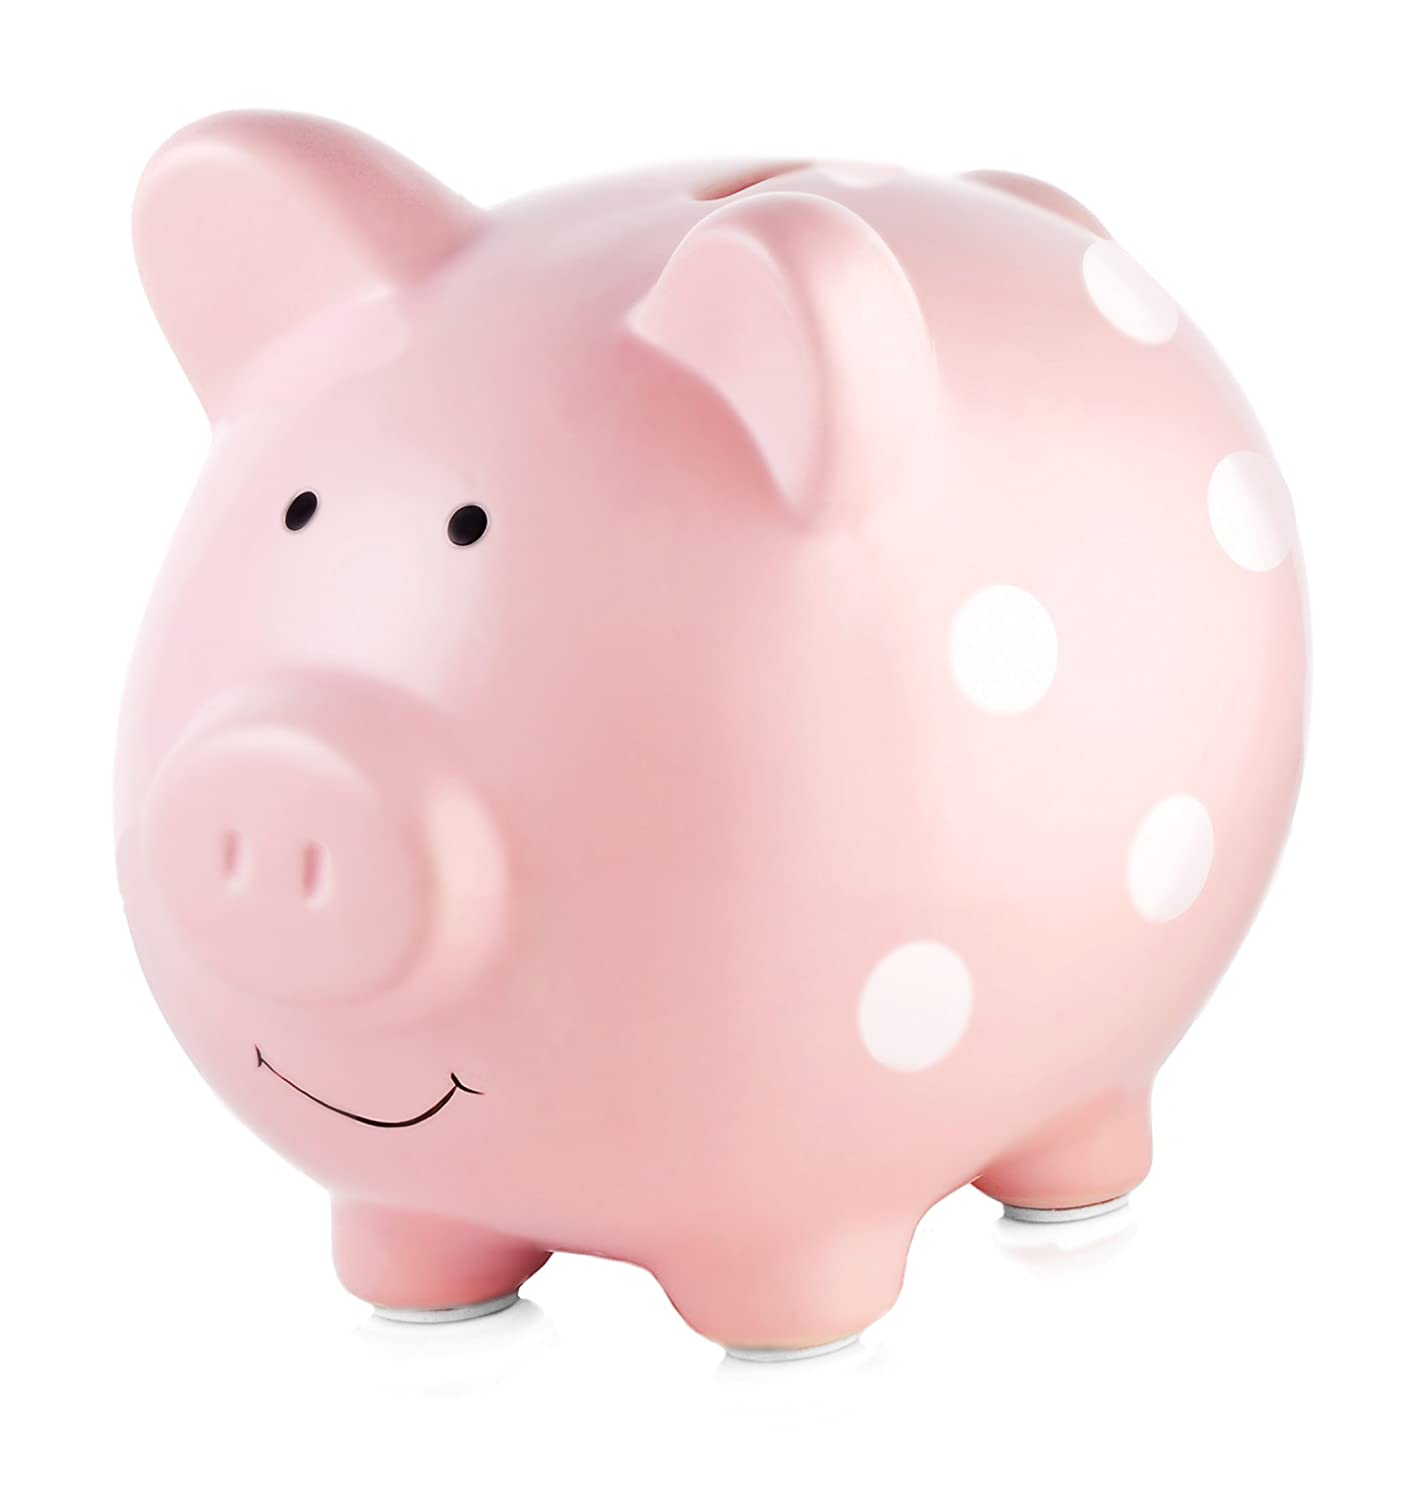 Pearhead CeramicPink Piggy Bank, Makes a Perfect Unique Gift, Nursery Décor, Keepsake, or Savings Piggy Bank for Kids, Pink